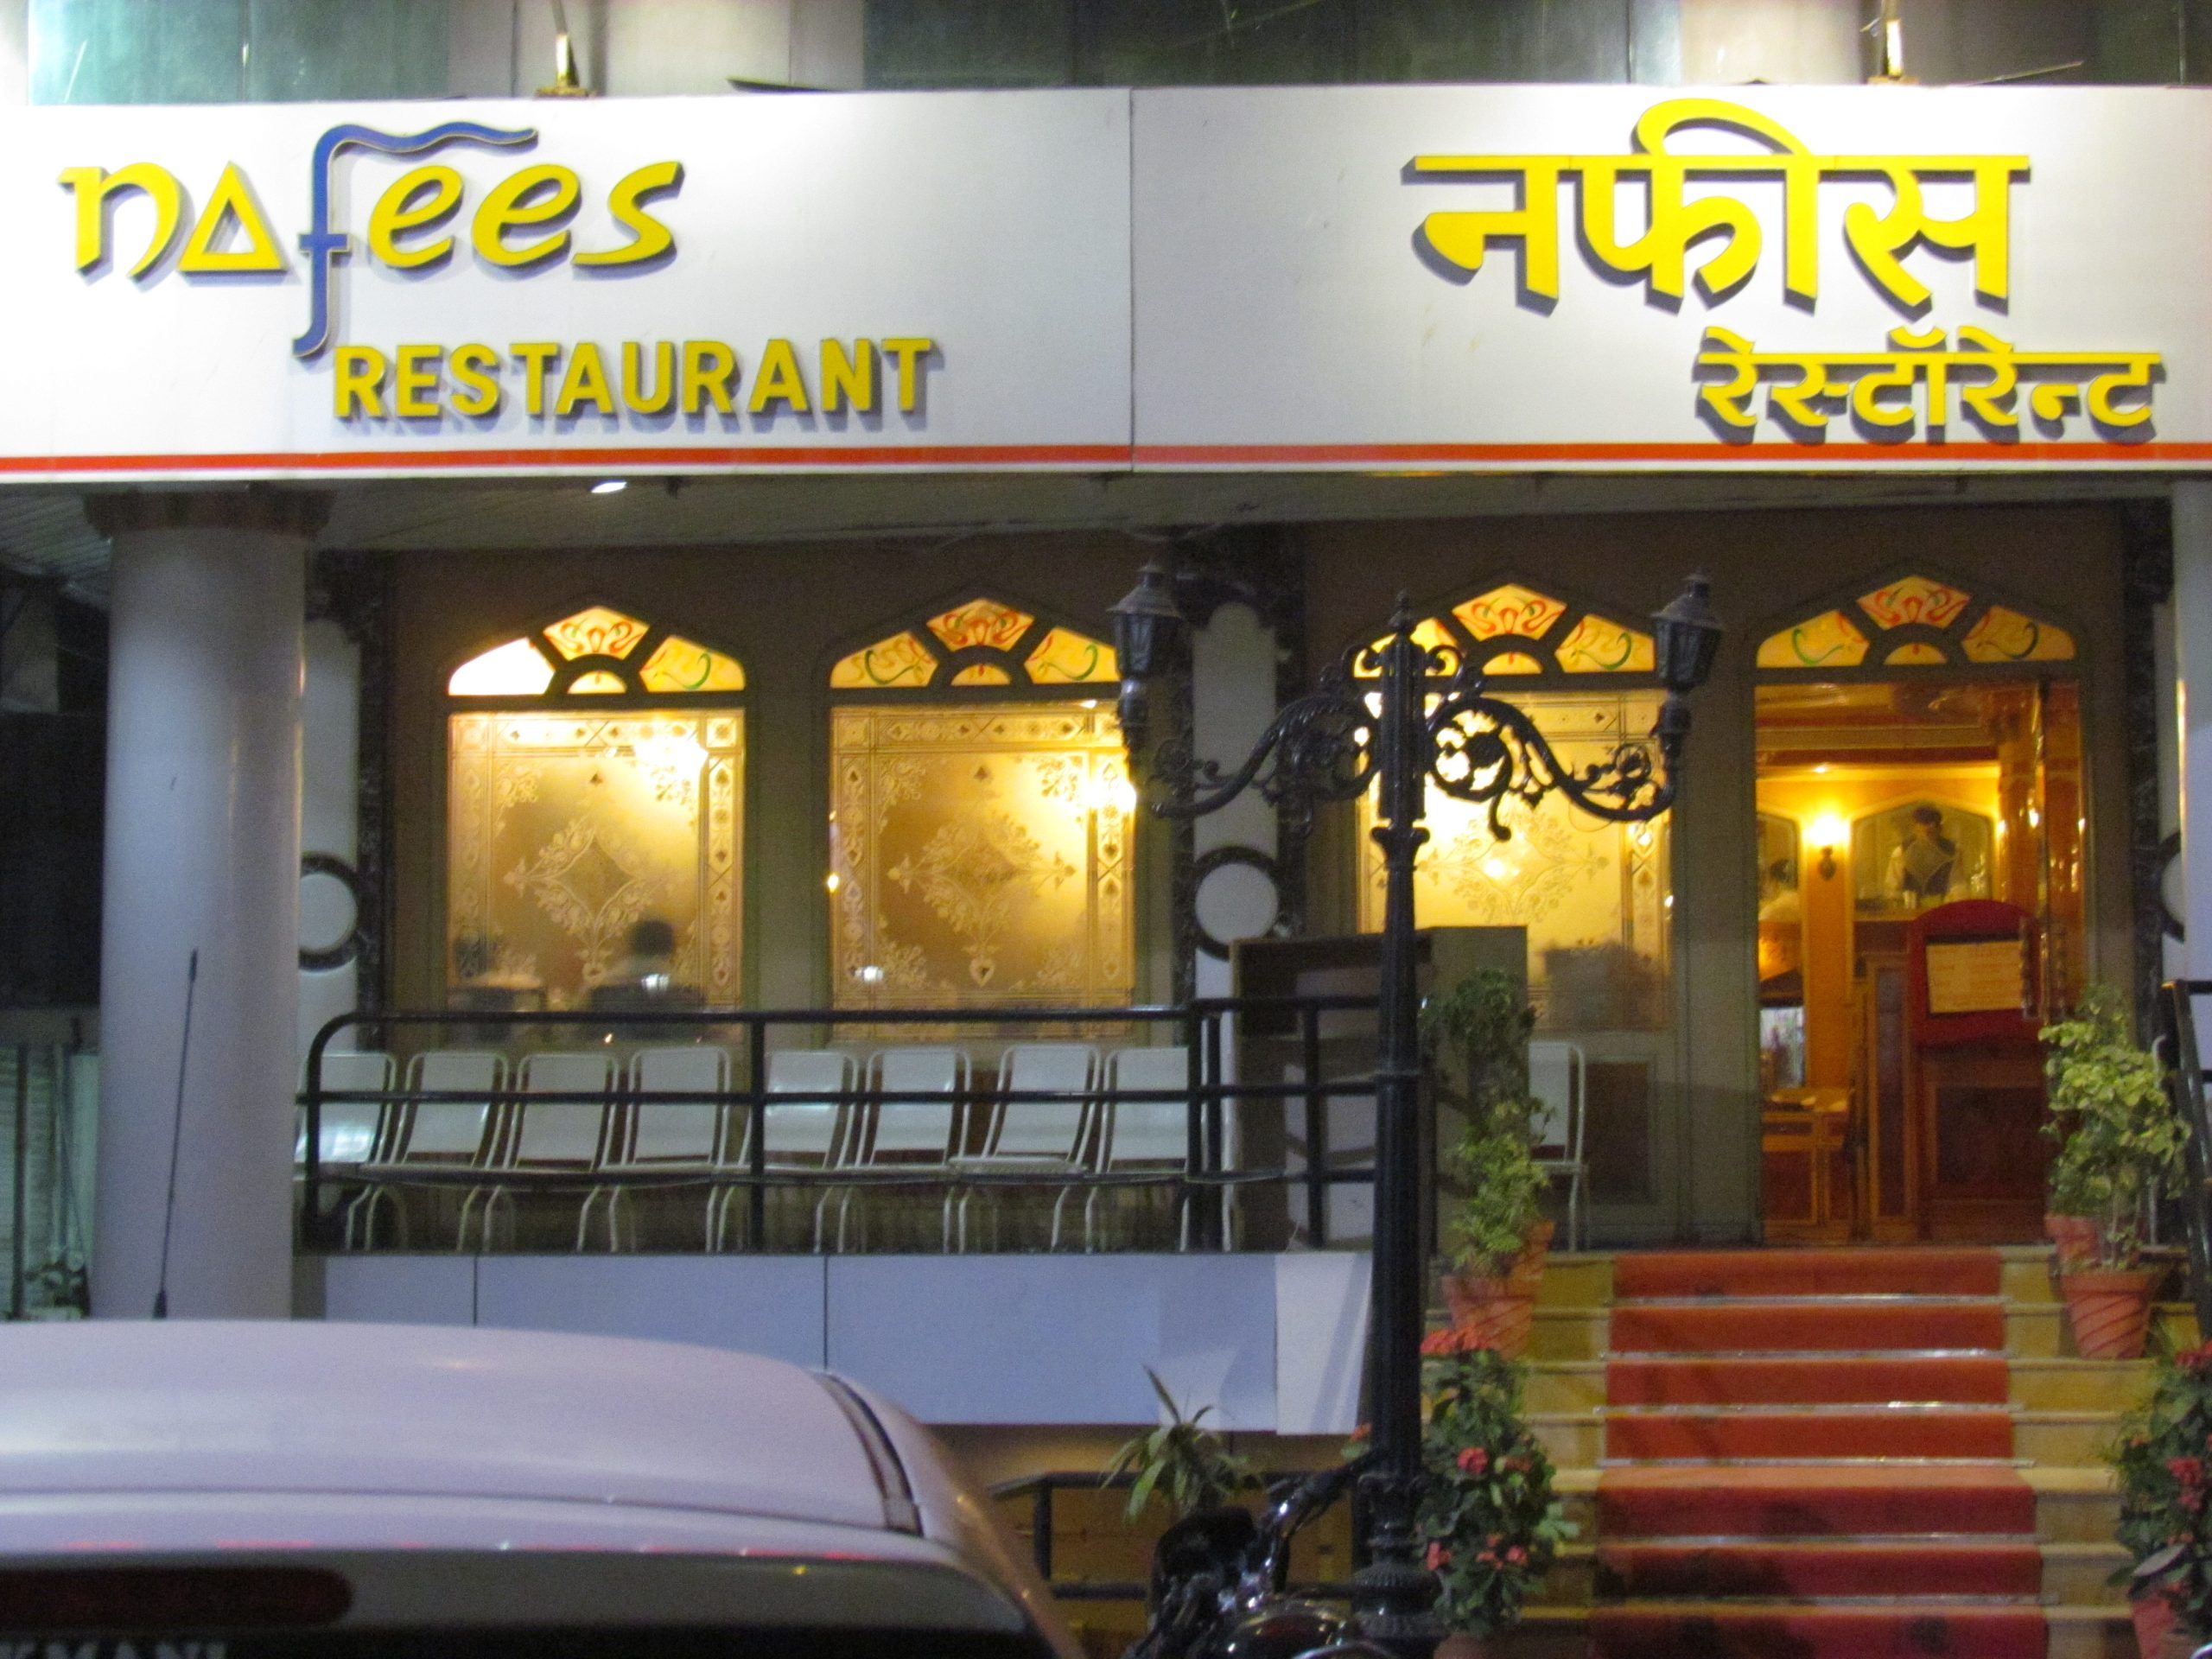 Top Restaurant In Indore To Taste Delicious Food-Nafees